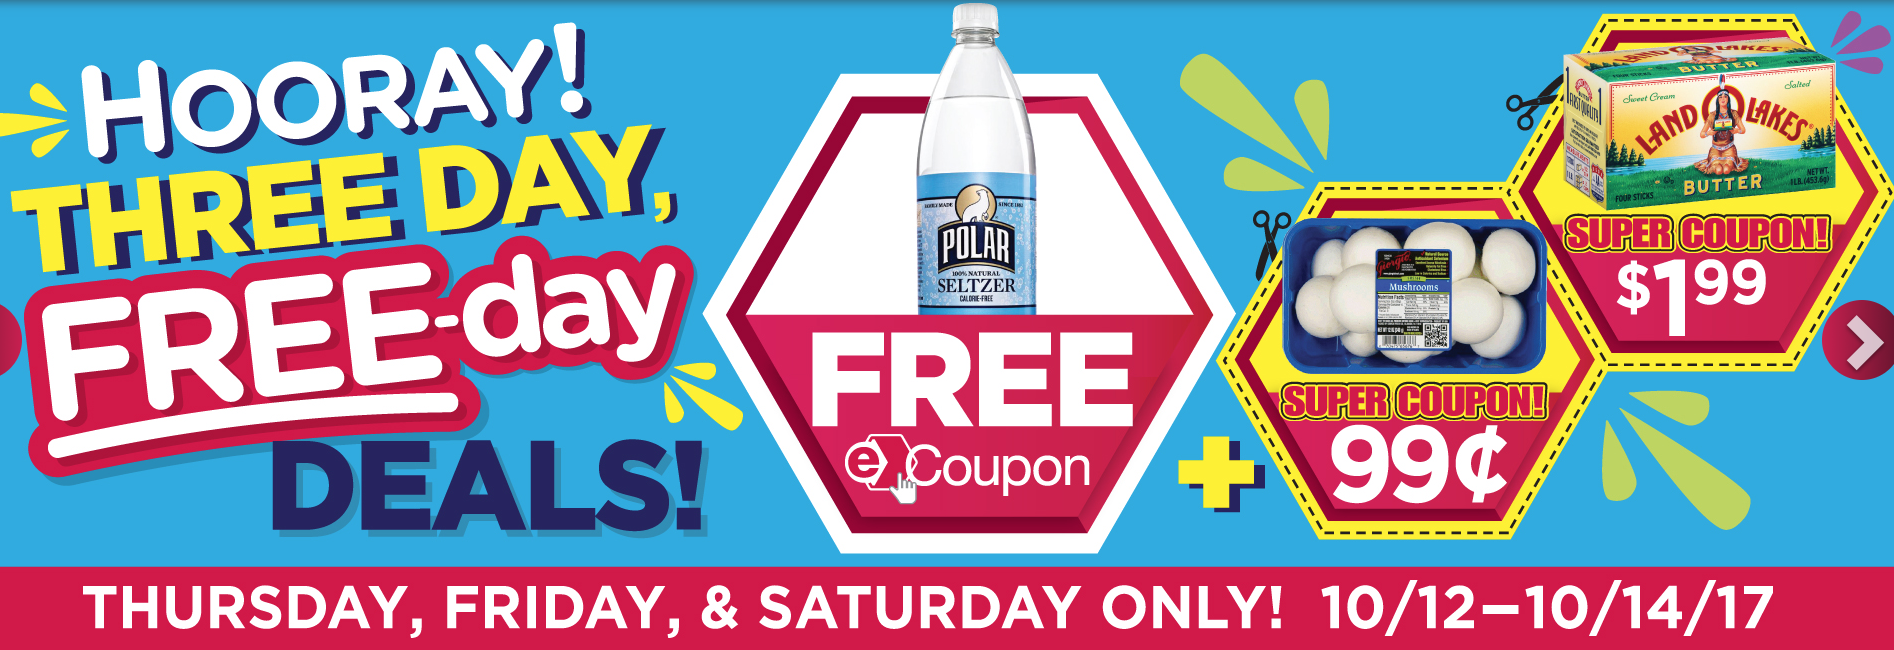 Tops E coupons: This weeks Three Day Free Day deals -> FREE Polar Seltzer 1 ltr, $.99 Mushrooms and $0.49 Land O Lakes Butter!!!